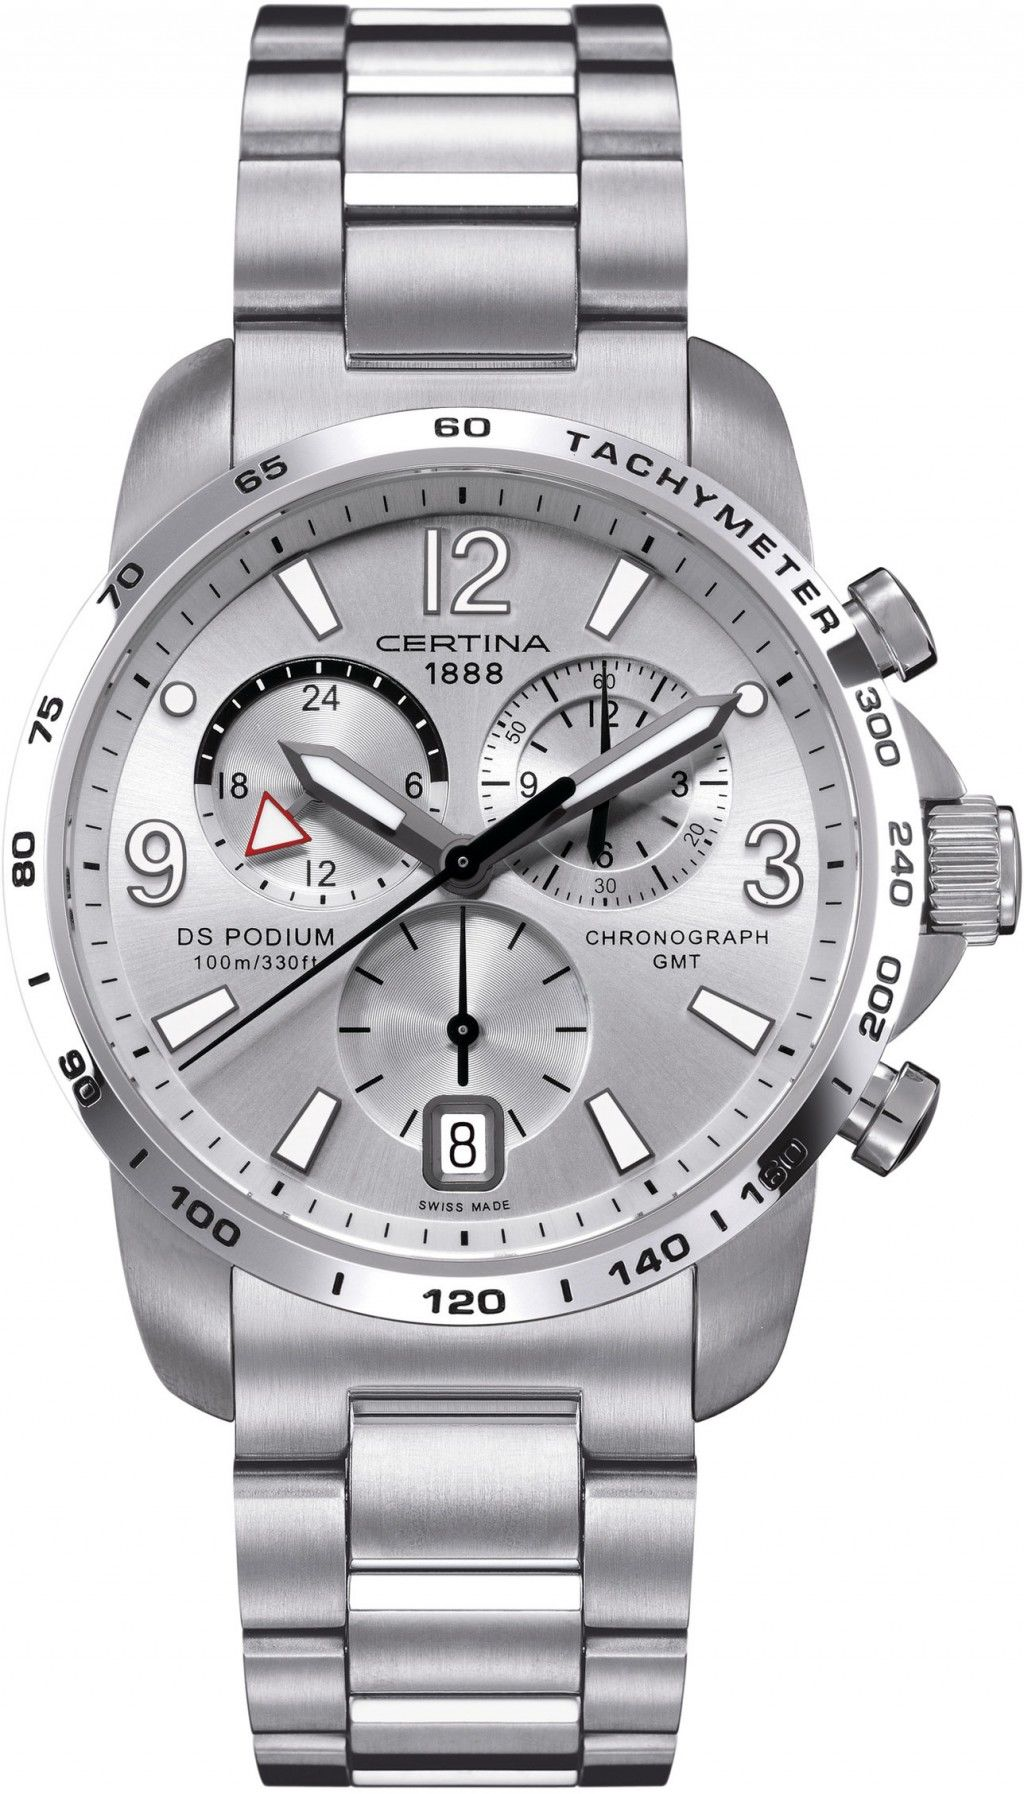 Certina DS Podium Chronograph GMT Quartz C001.639.11.037.00